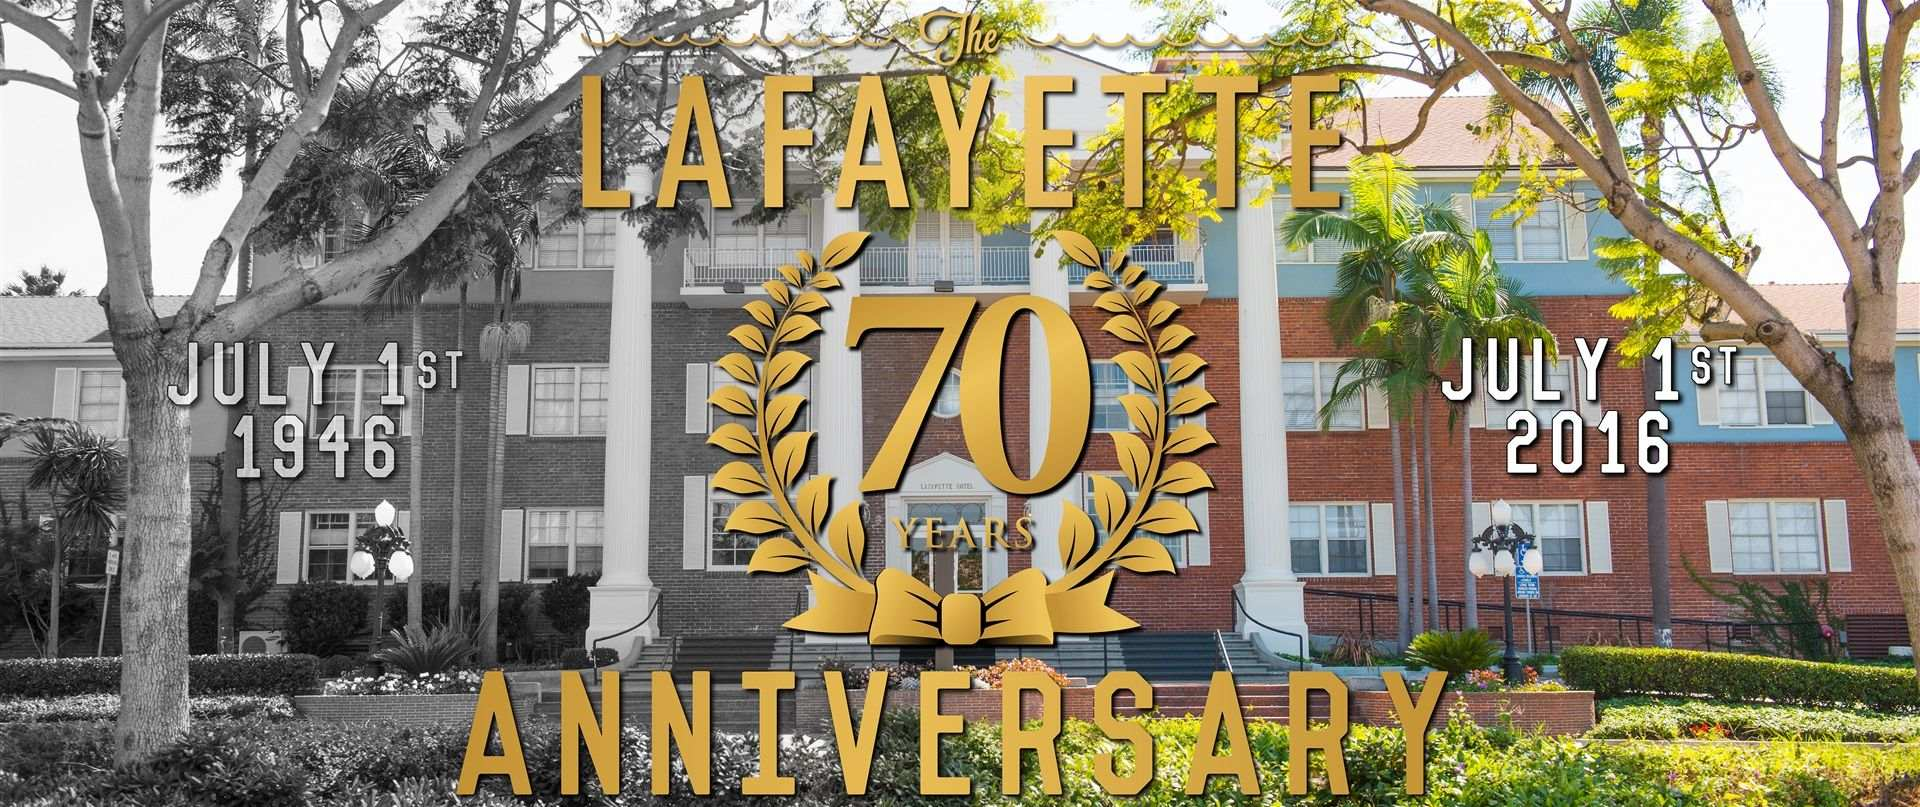 The Lafayette Hotel's 70th Anniversary